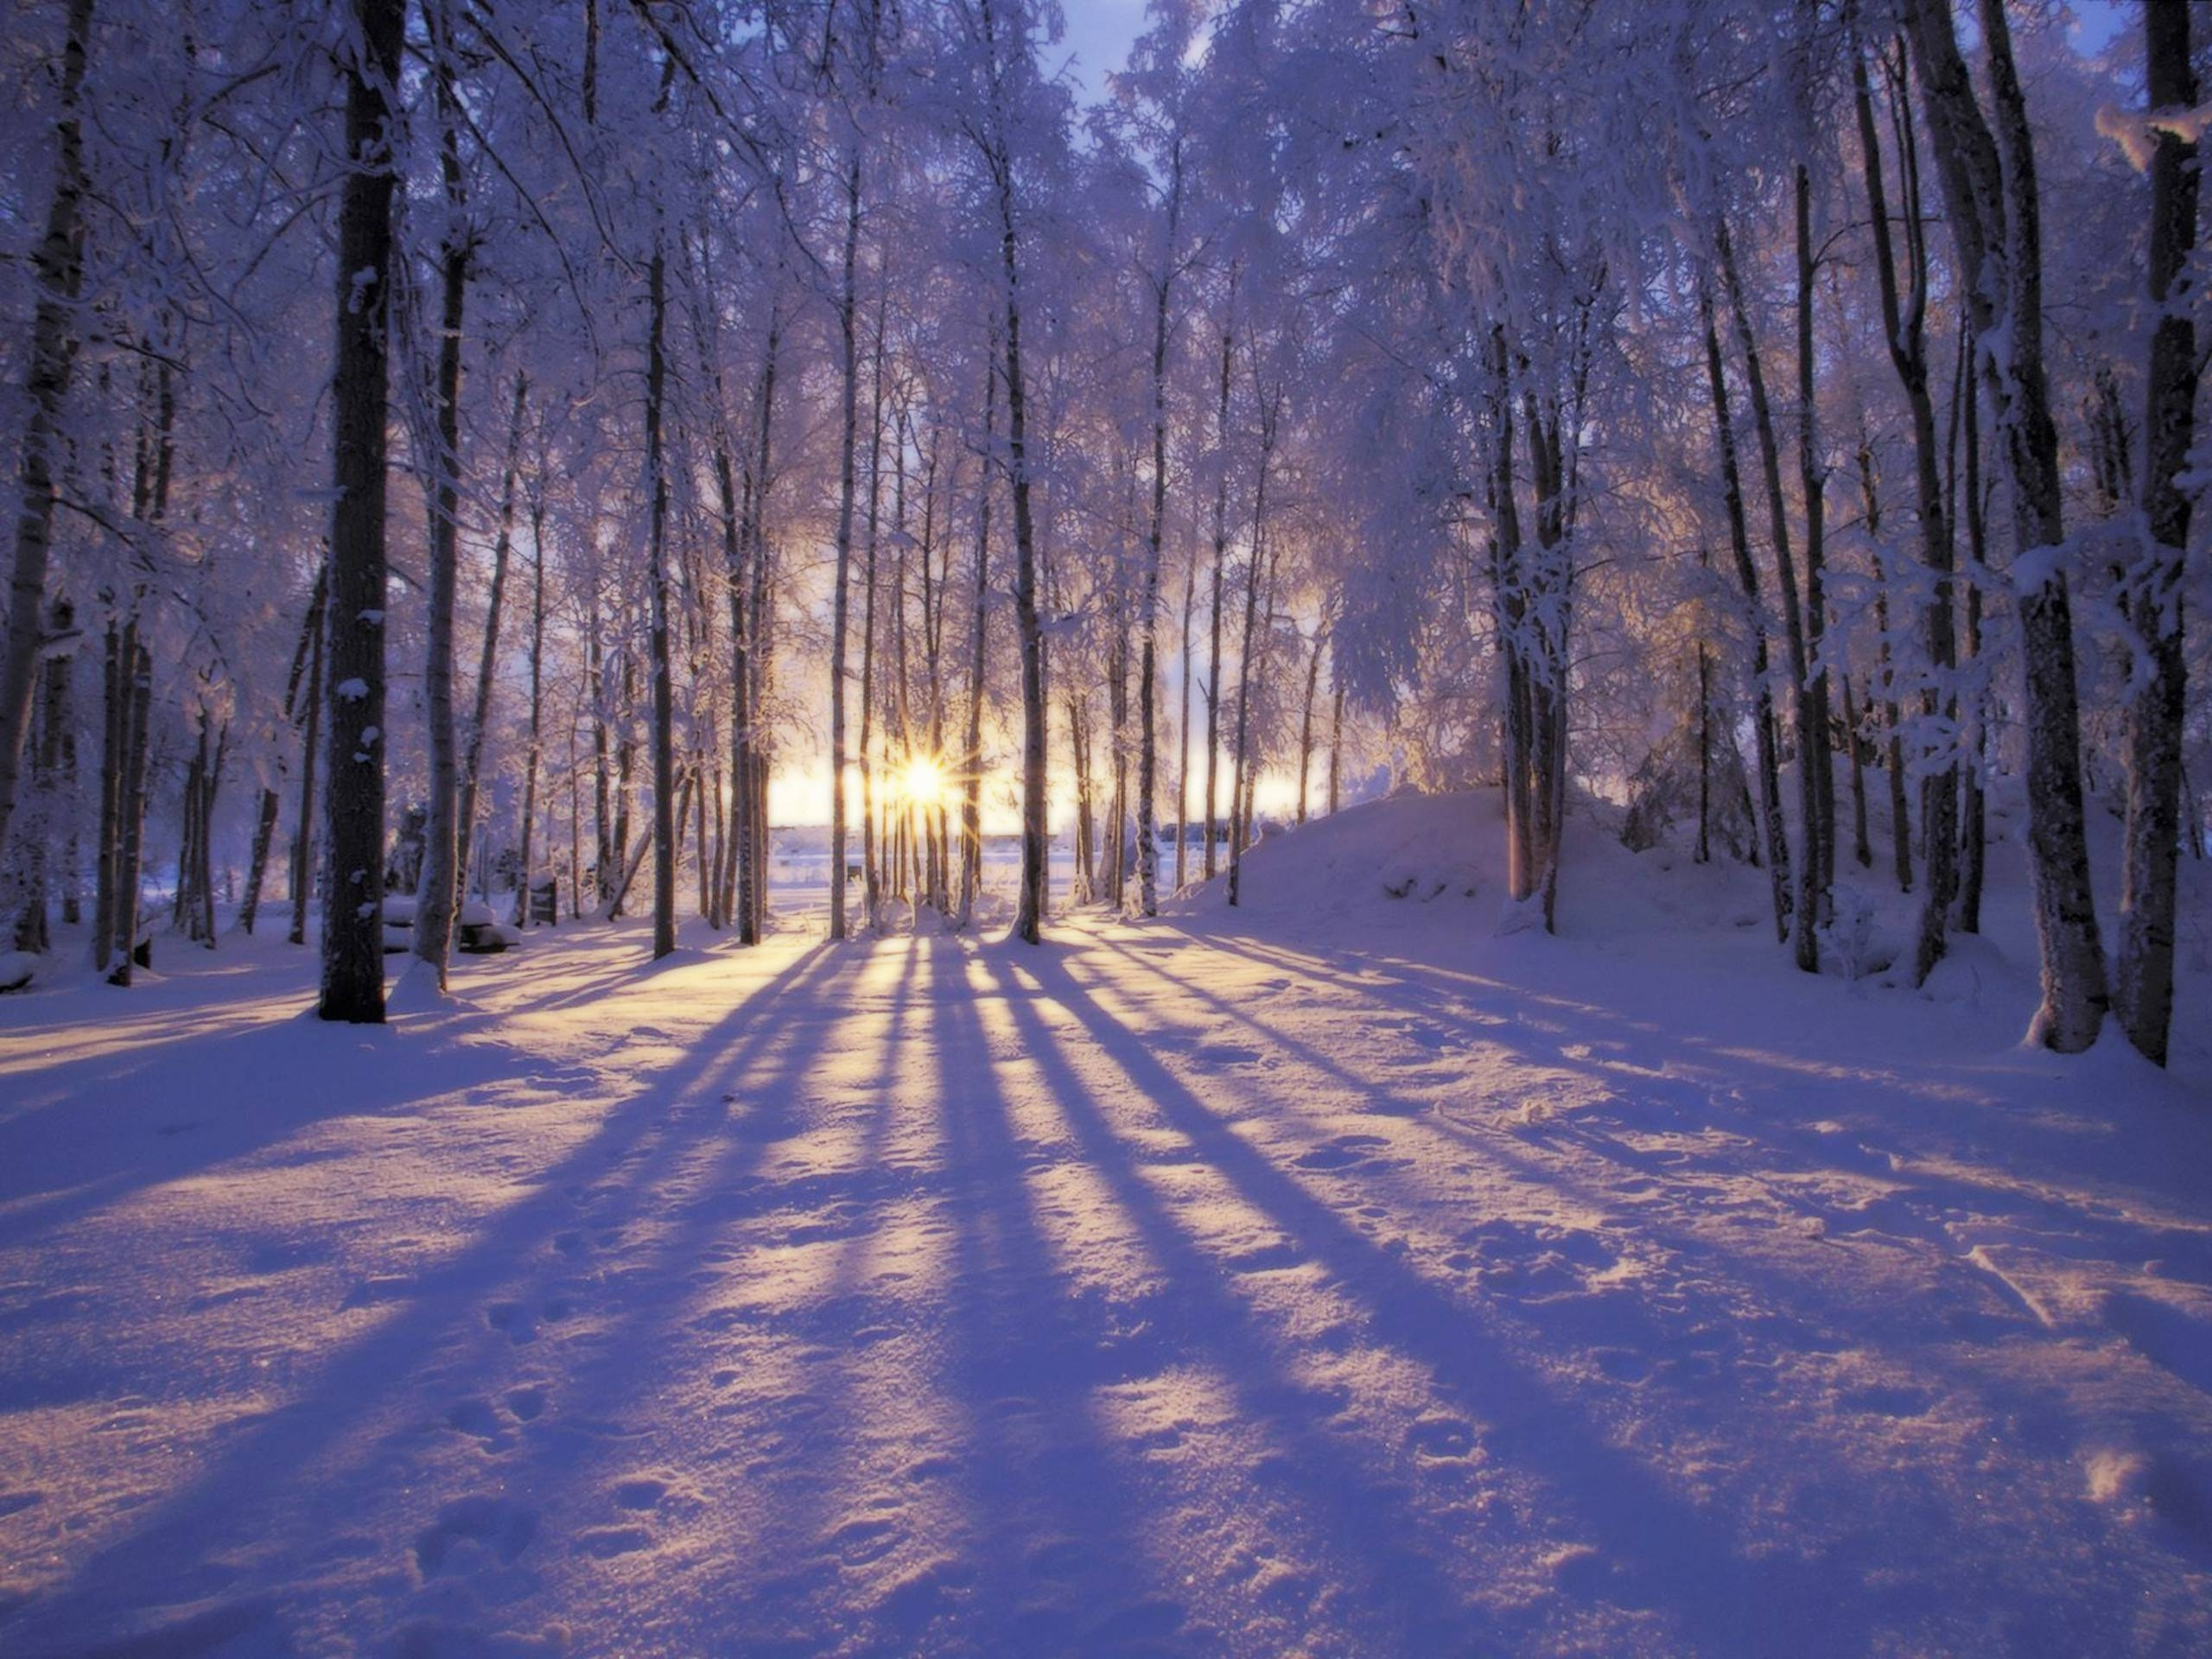 wallpapers desktop winter scenes - wallpaper cave